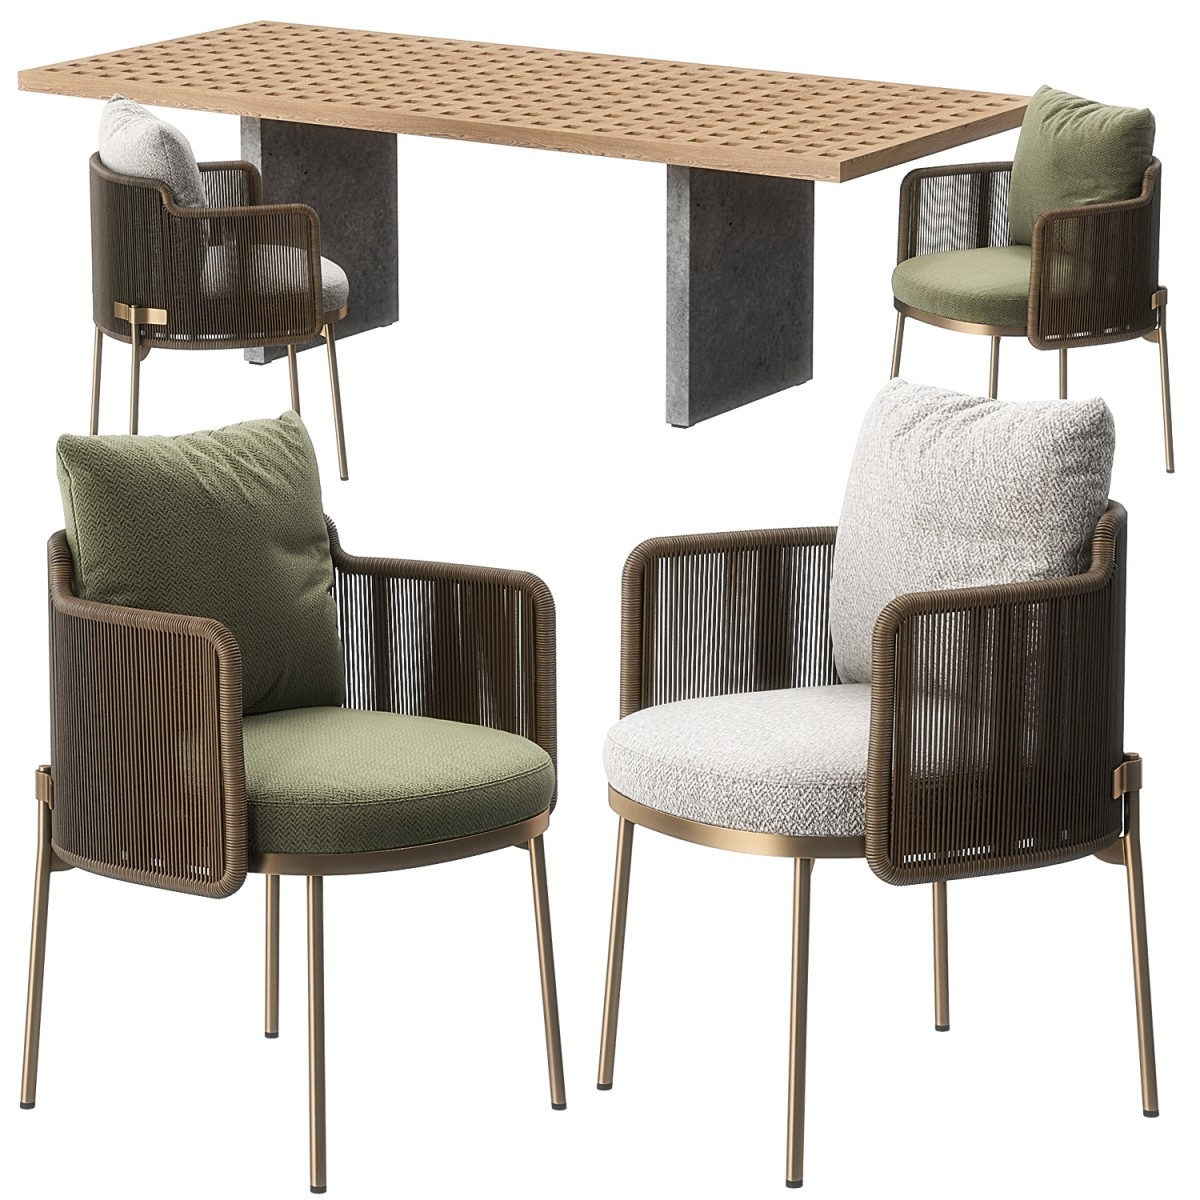 Tape Cord Outdoor Chair Quadrado Table By 3d Model For Vray